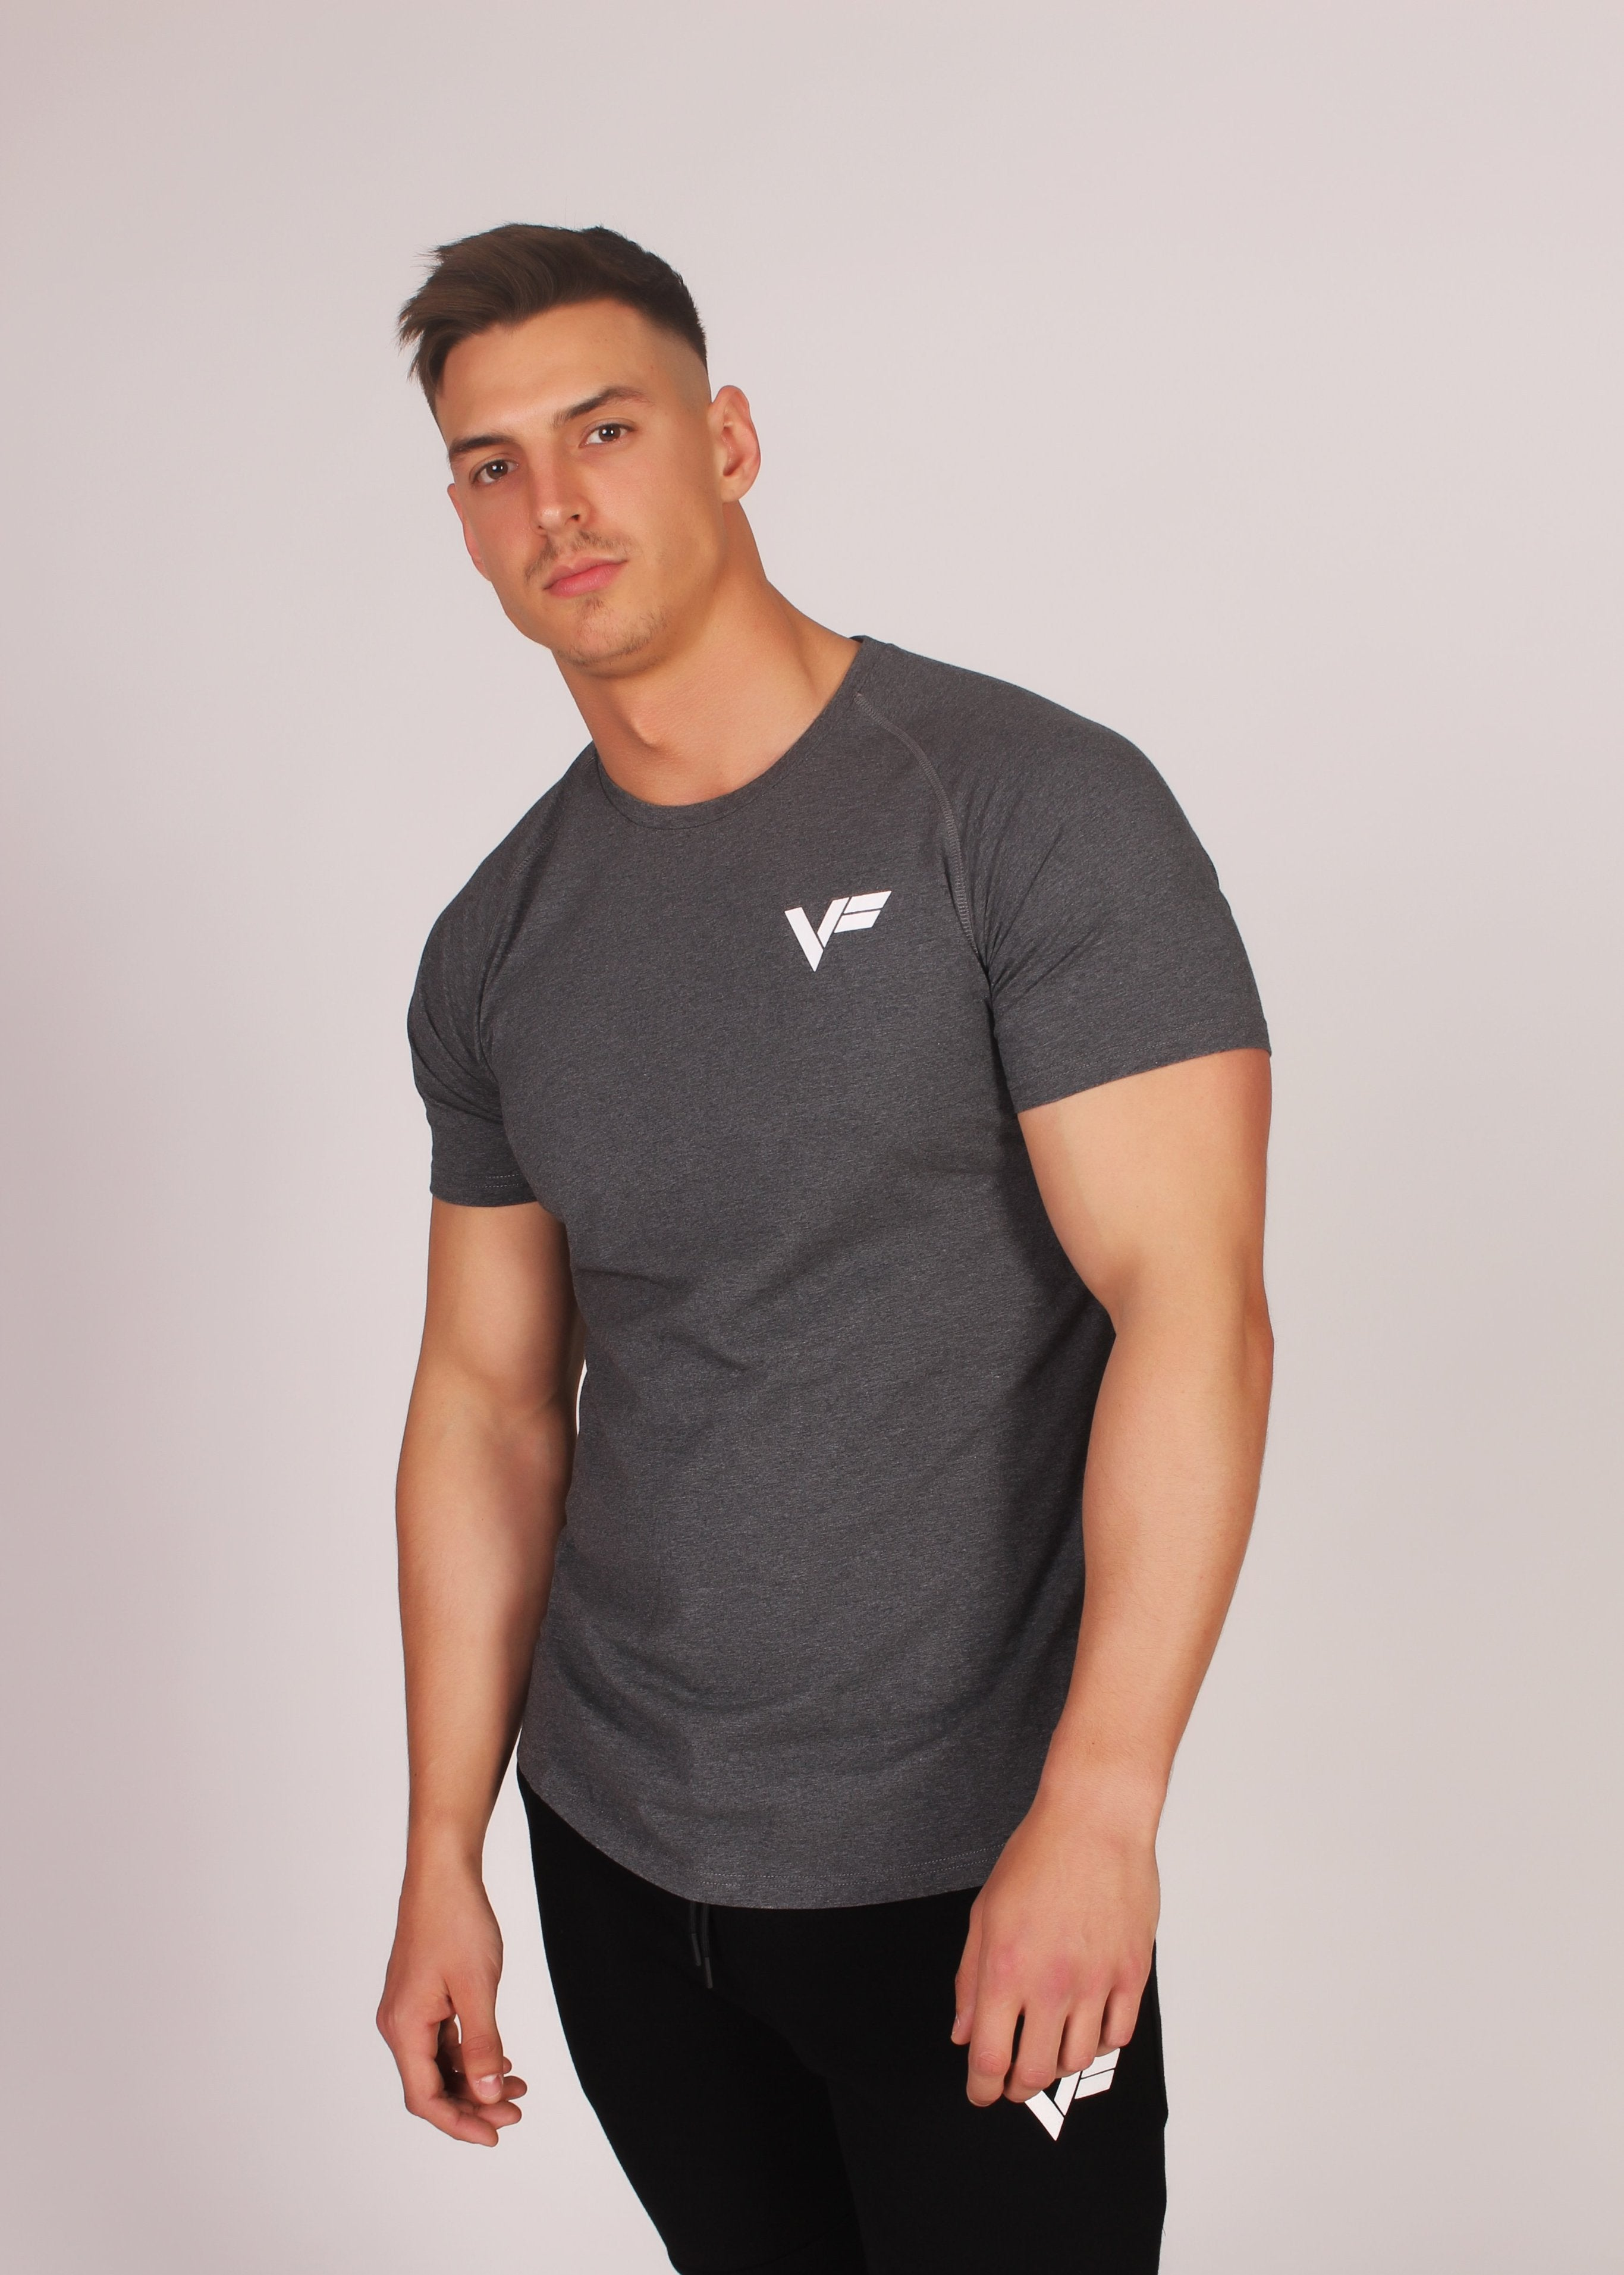 VF Signature T-Shirt - Shadow